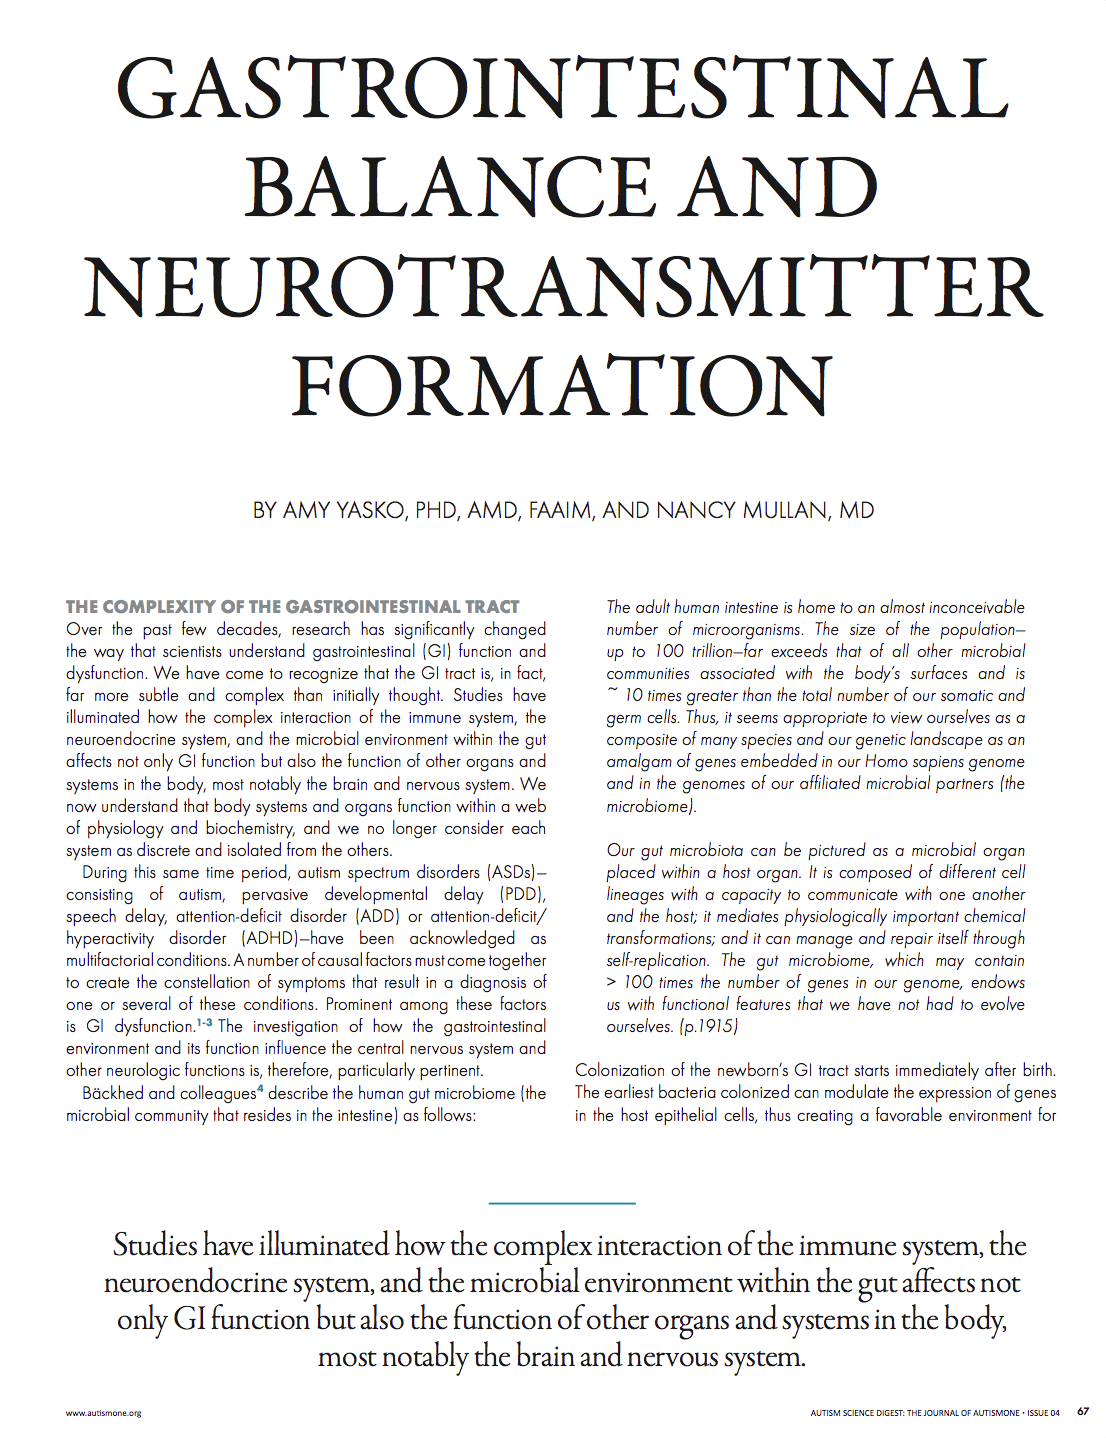 Gastrointestinal Balance and Neurotransmitter Formation